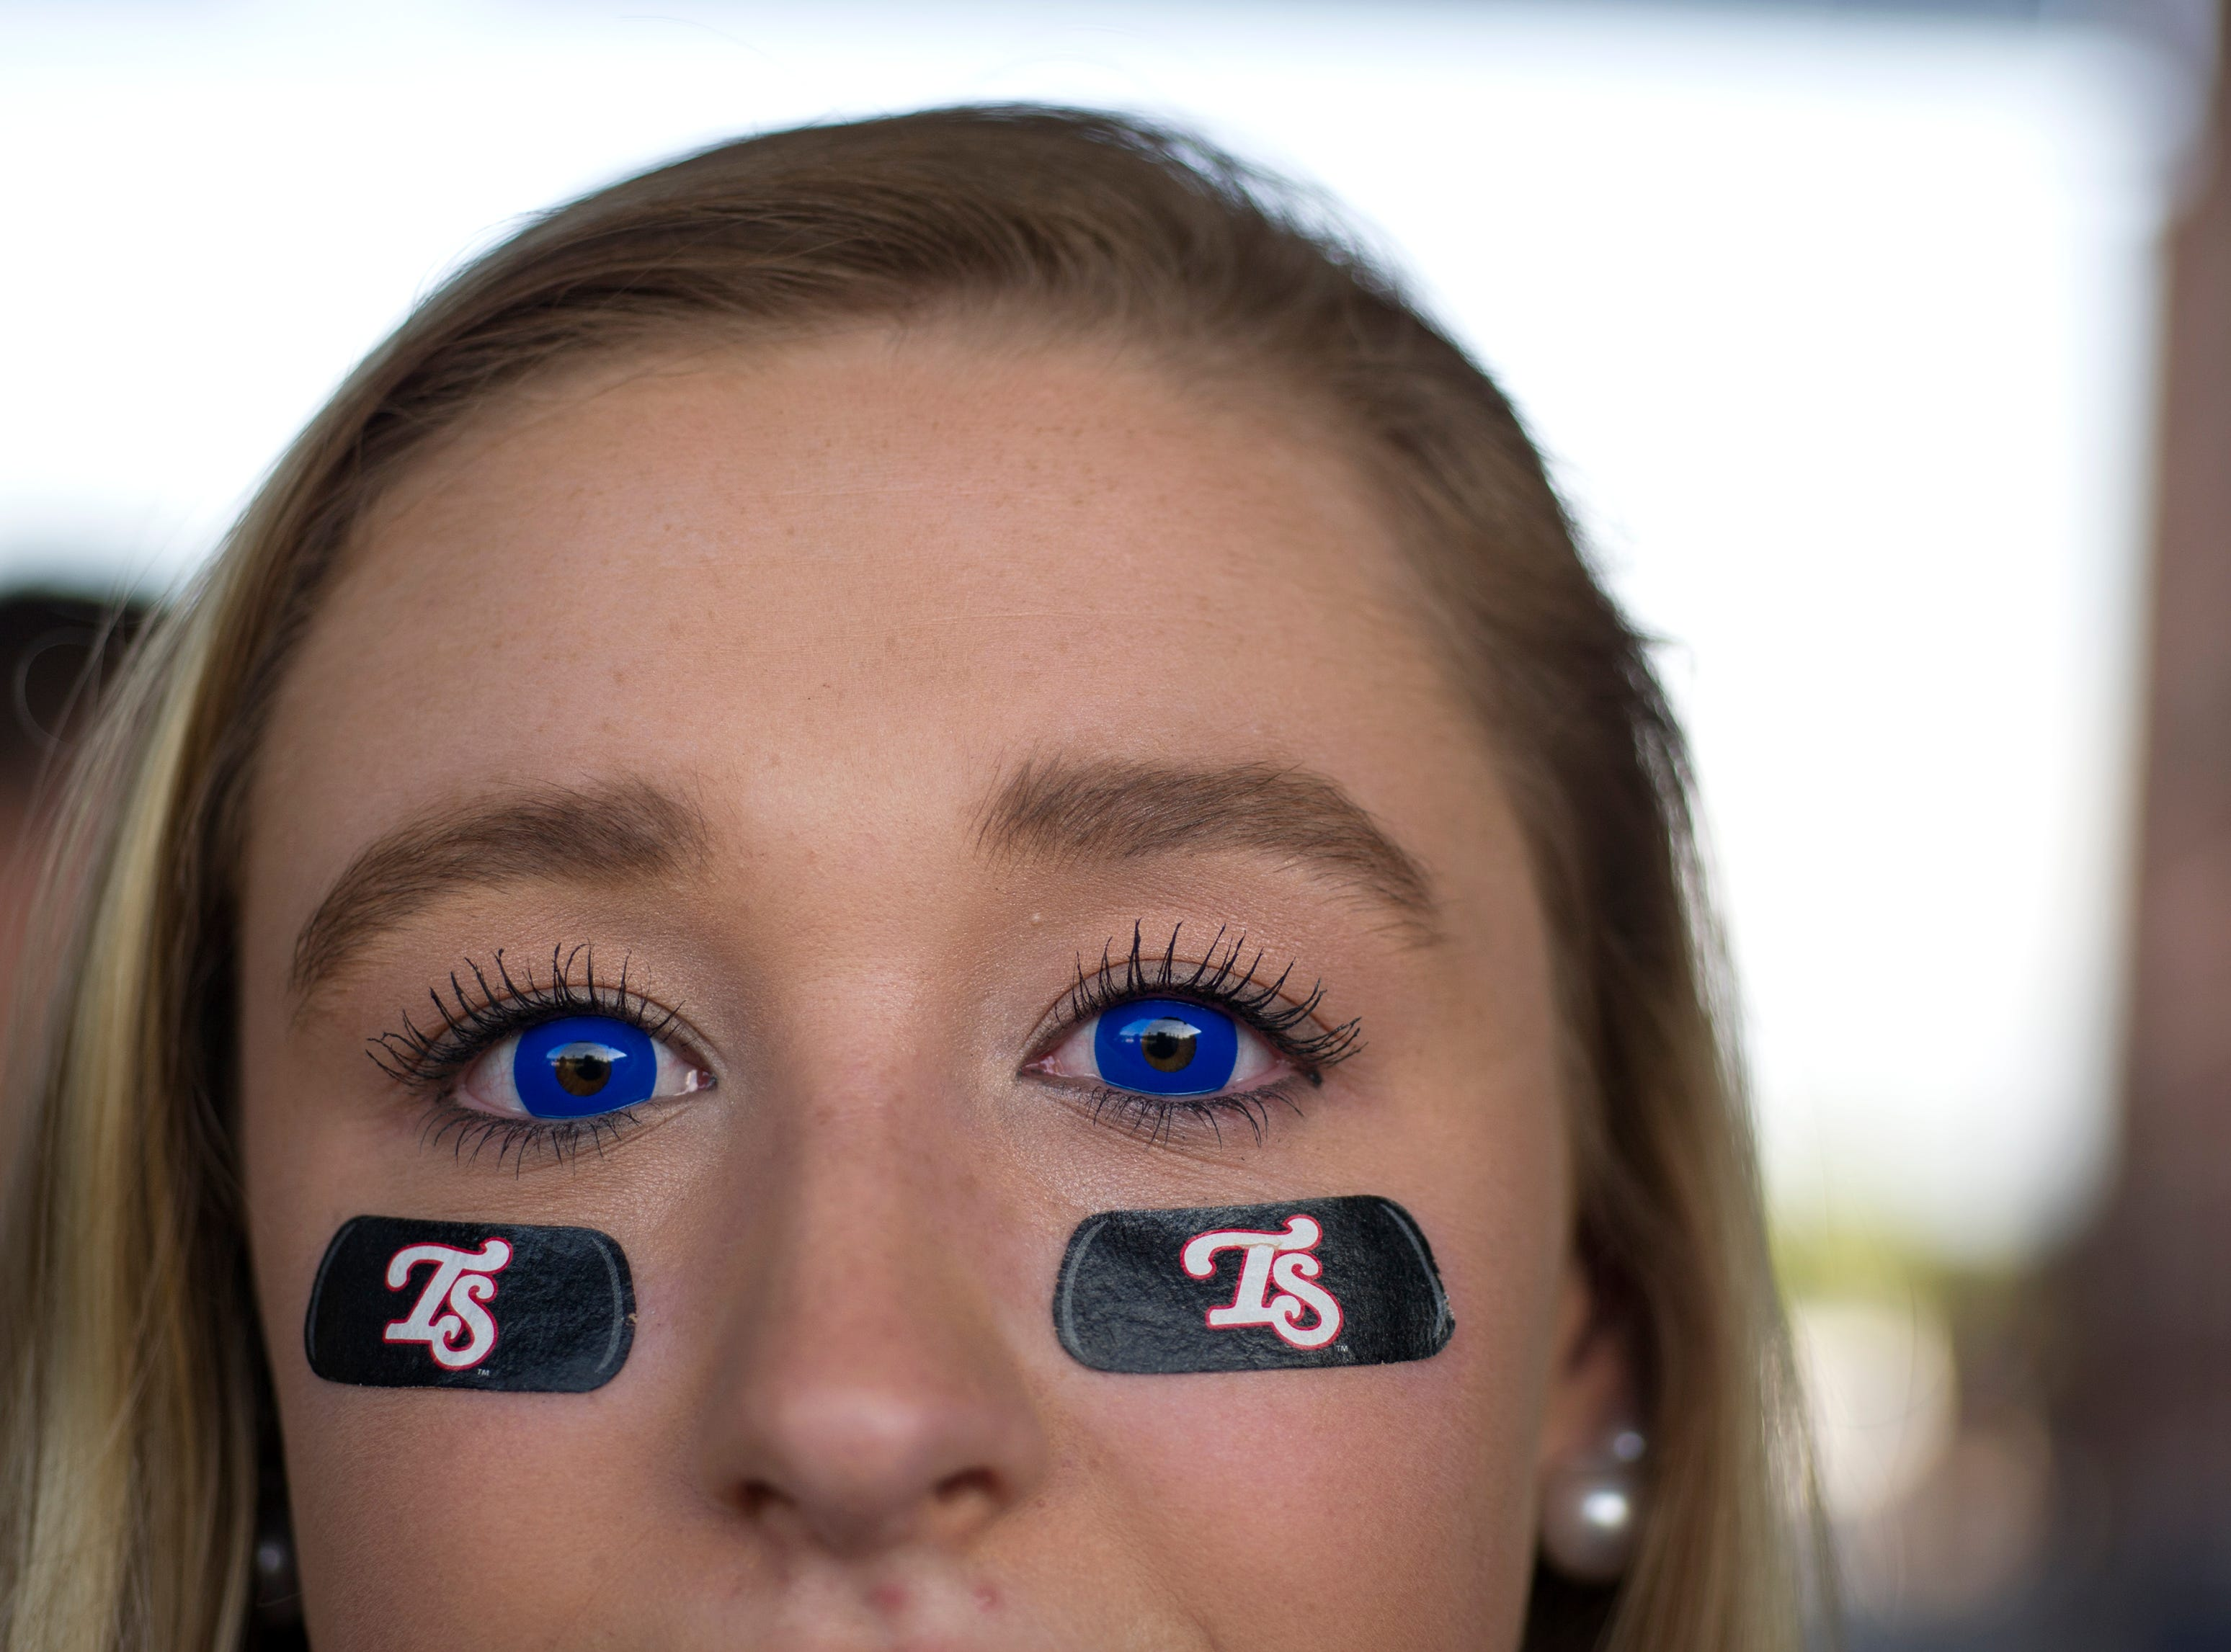 Chelsea Stokely of Jefferson City wears blue contact lenses to show her team pride during the Tennessee Smokies versus the Jacksonville Suns baseball game at Smokies Stadium in Kodak Tuesday, Sep. 1, 2015. The team's final home game was fan appreciation themed.